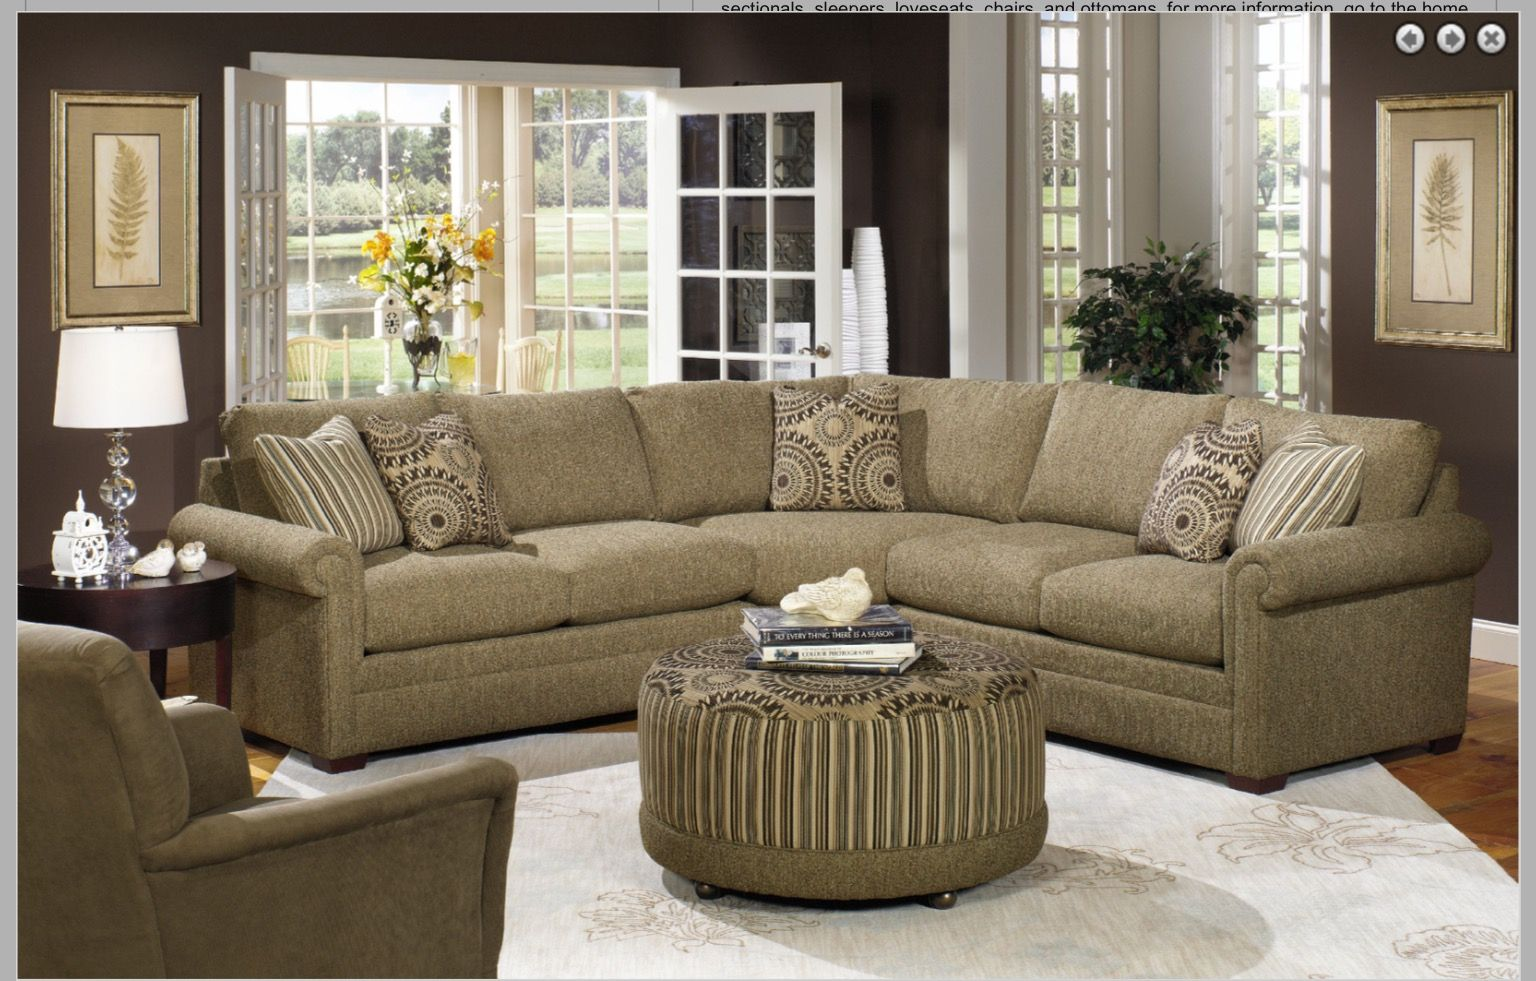 Pin By Nadine On Kitchen Ideas With Images Living Room Sectional Furniture Sofa Set Craftmaster Furniture